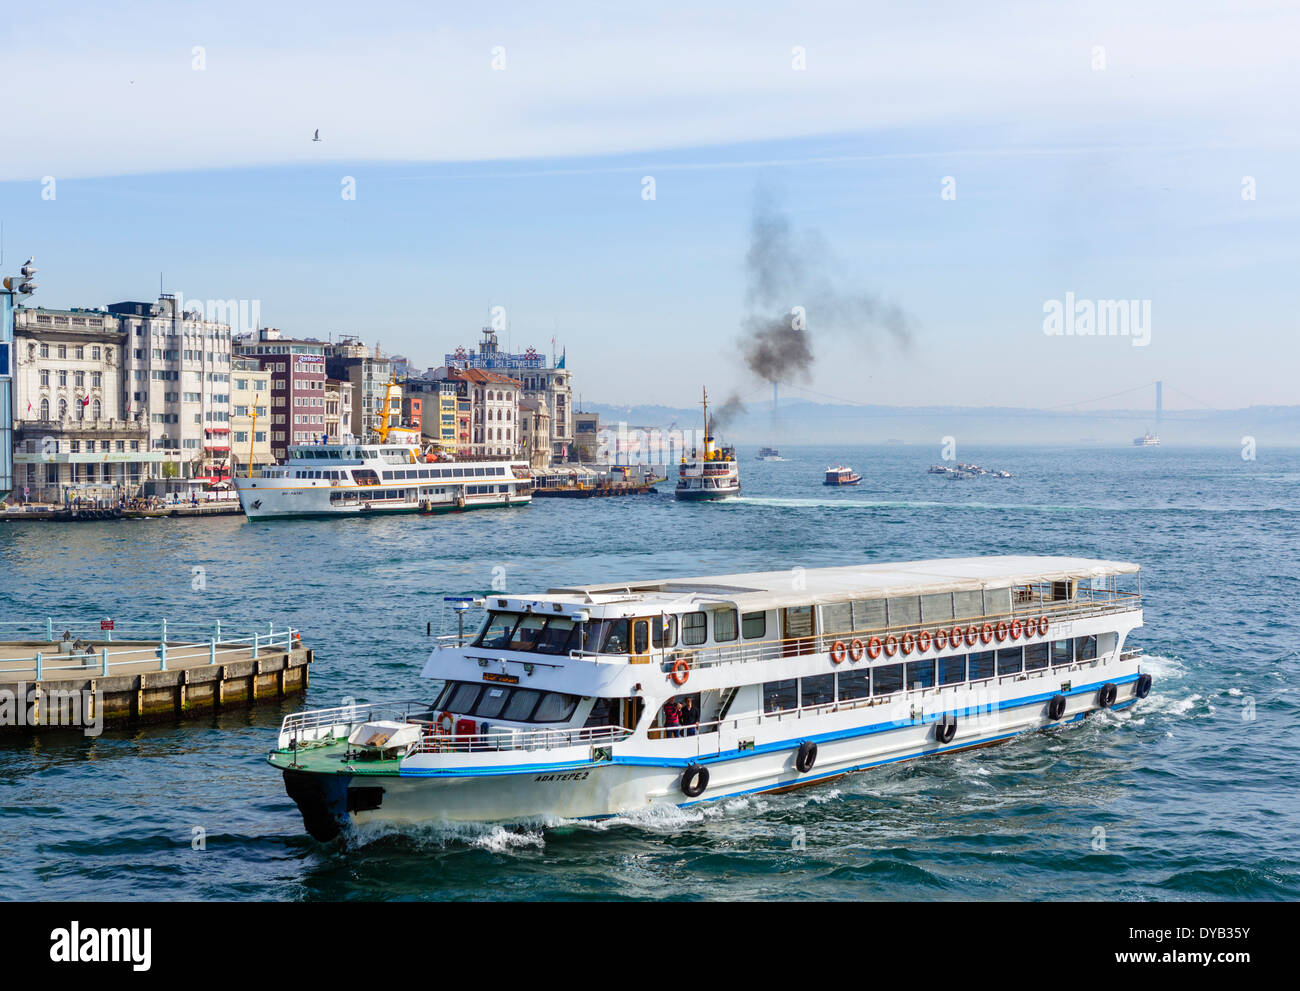 View from the Galata Bridge of boats on the Golden Horn looking towards the Bosphorus, Istanbul, Turkey - Stock Image